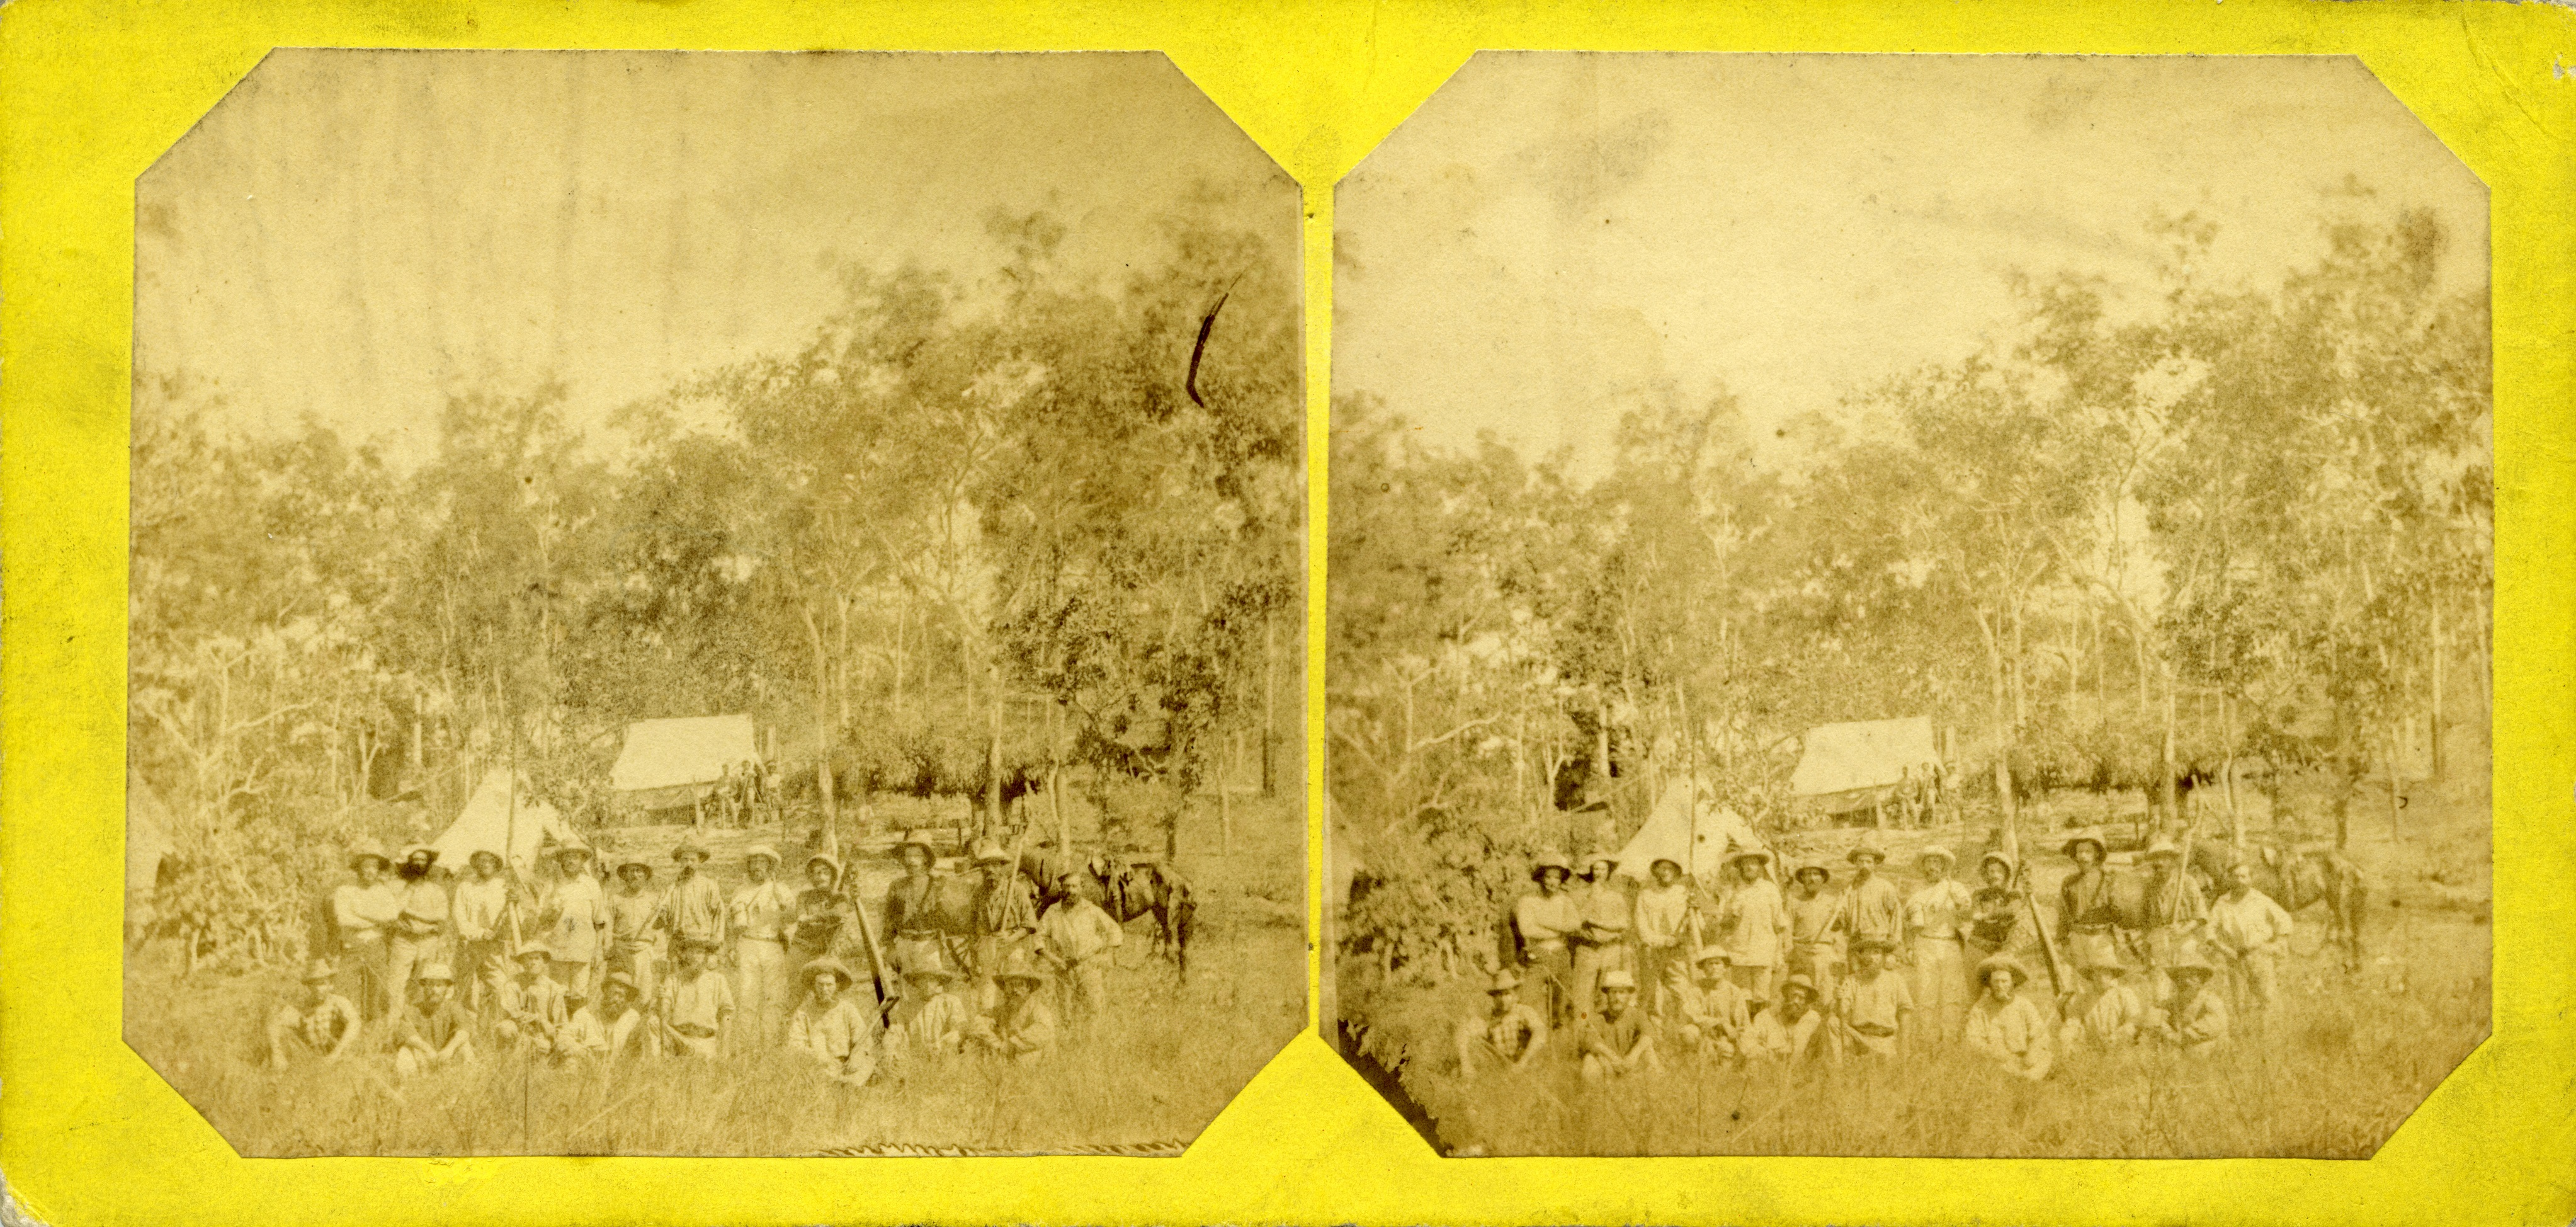 Stereoscopic image of Northern Territory Survey Expedition, 1869